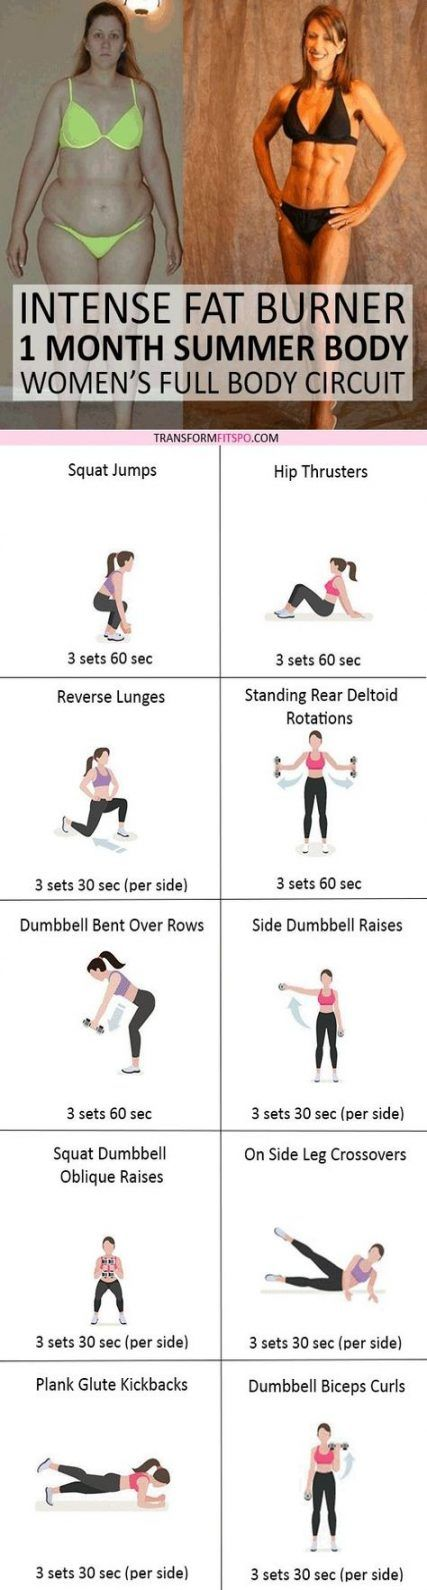 33+ Ideas Fitness Motivation Pictures Body Strength Training For 2019 #motivation #fitness